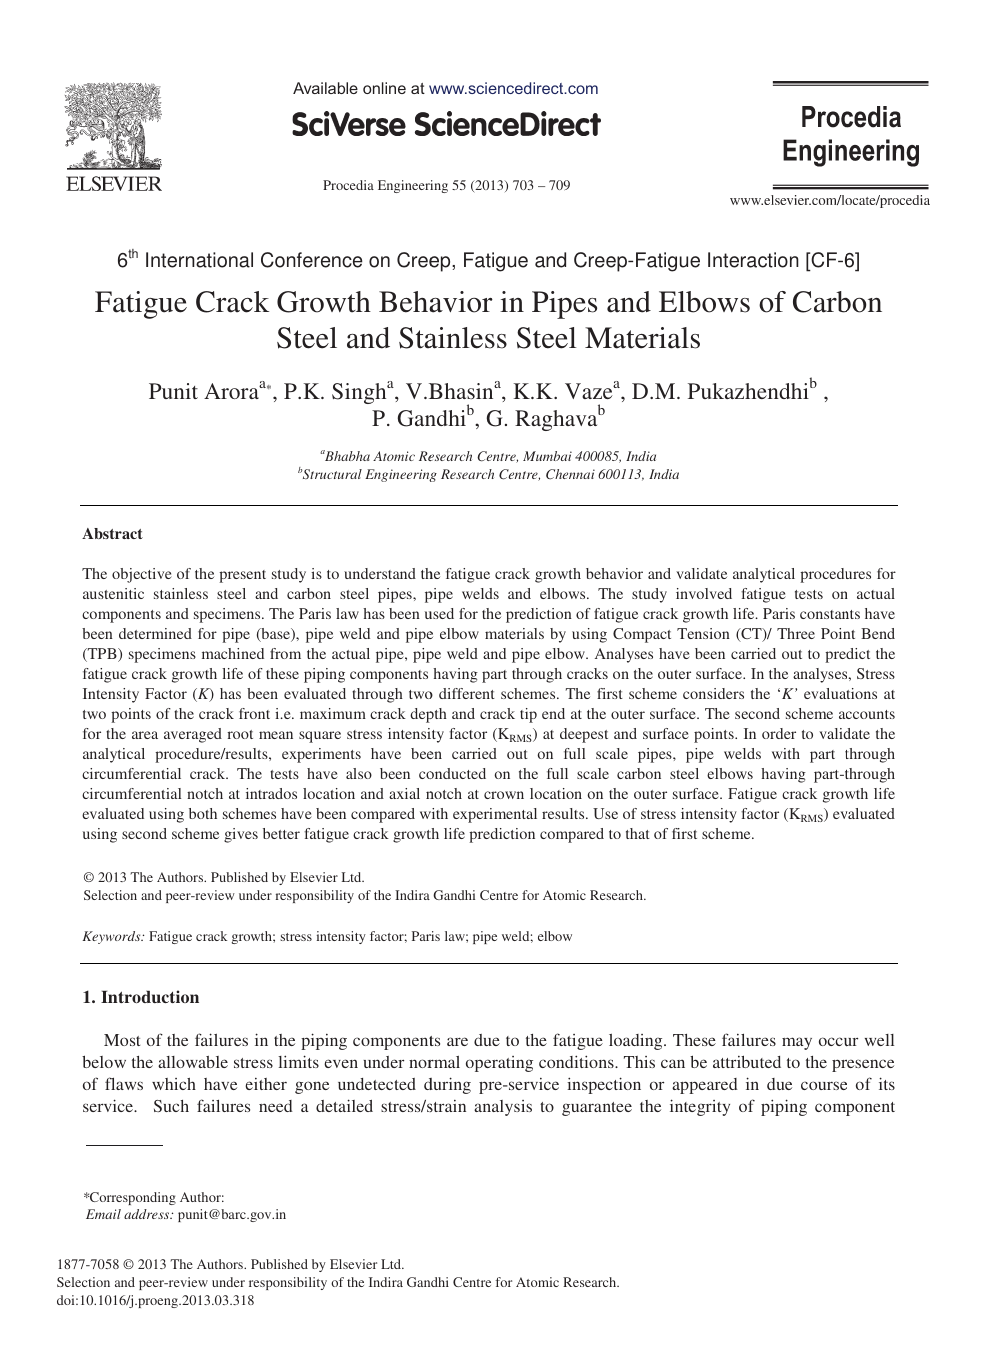 Fatigue Crack Growth Behavior in Pipes and Elbows of Carbon